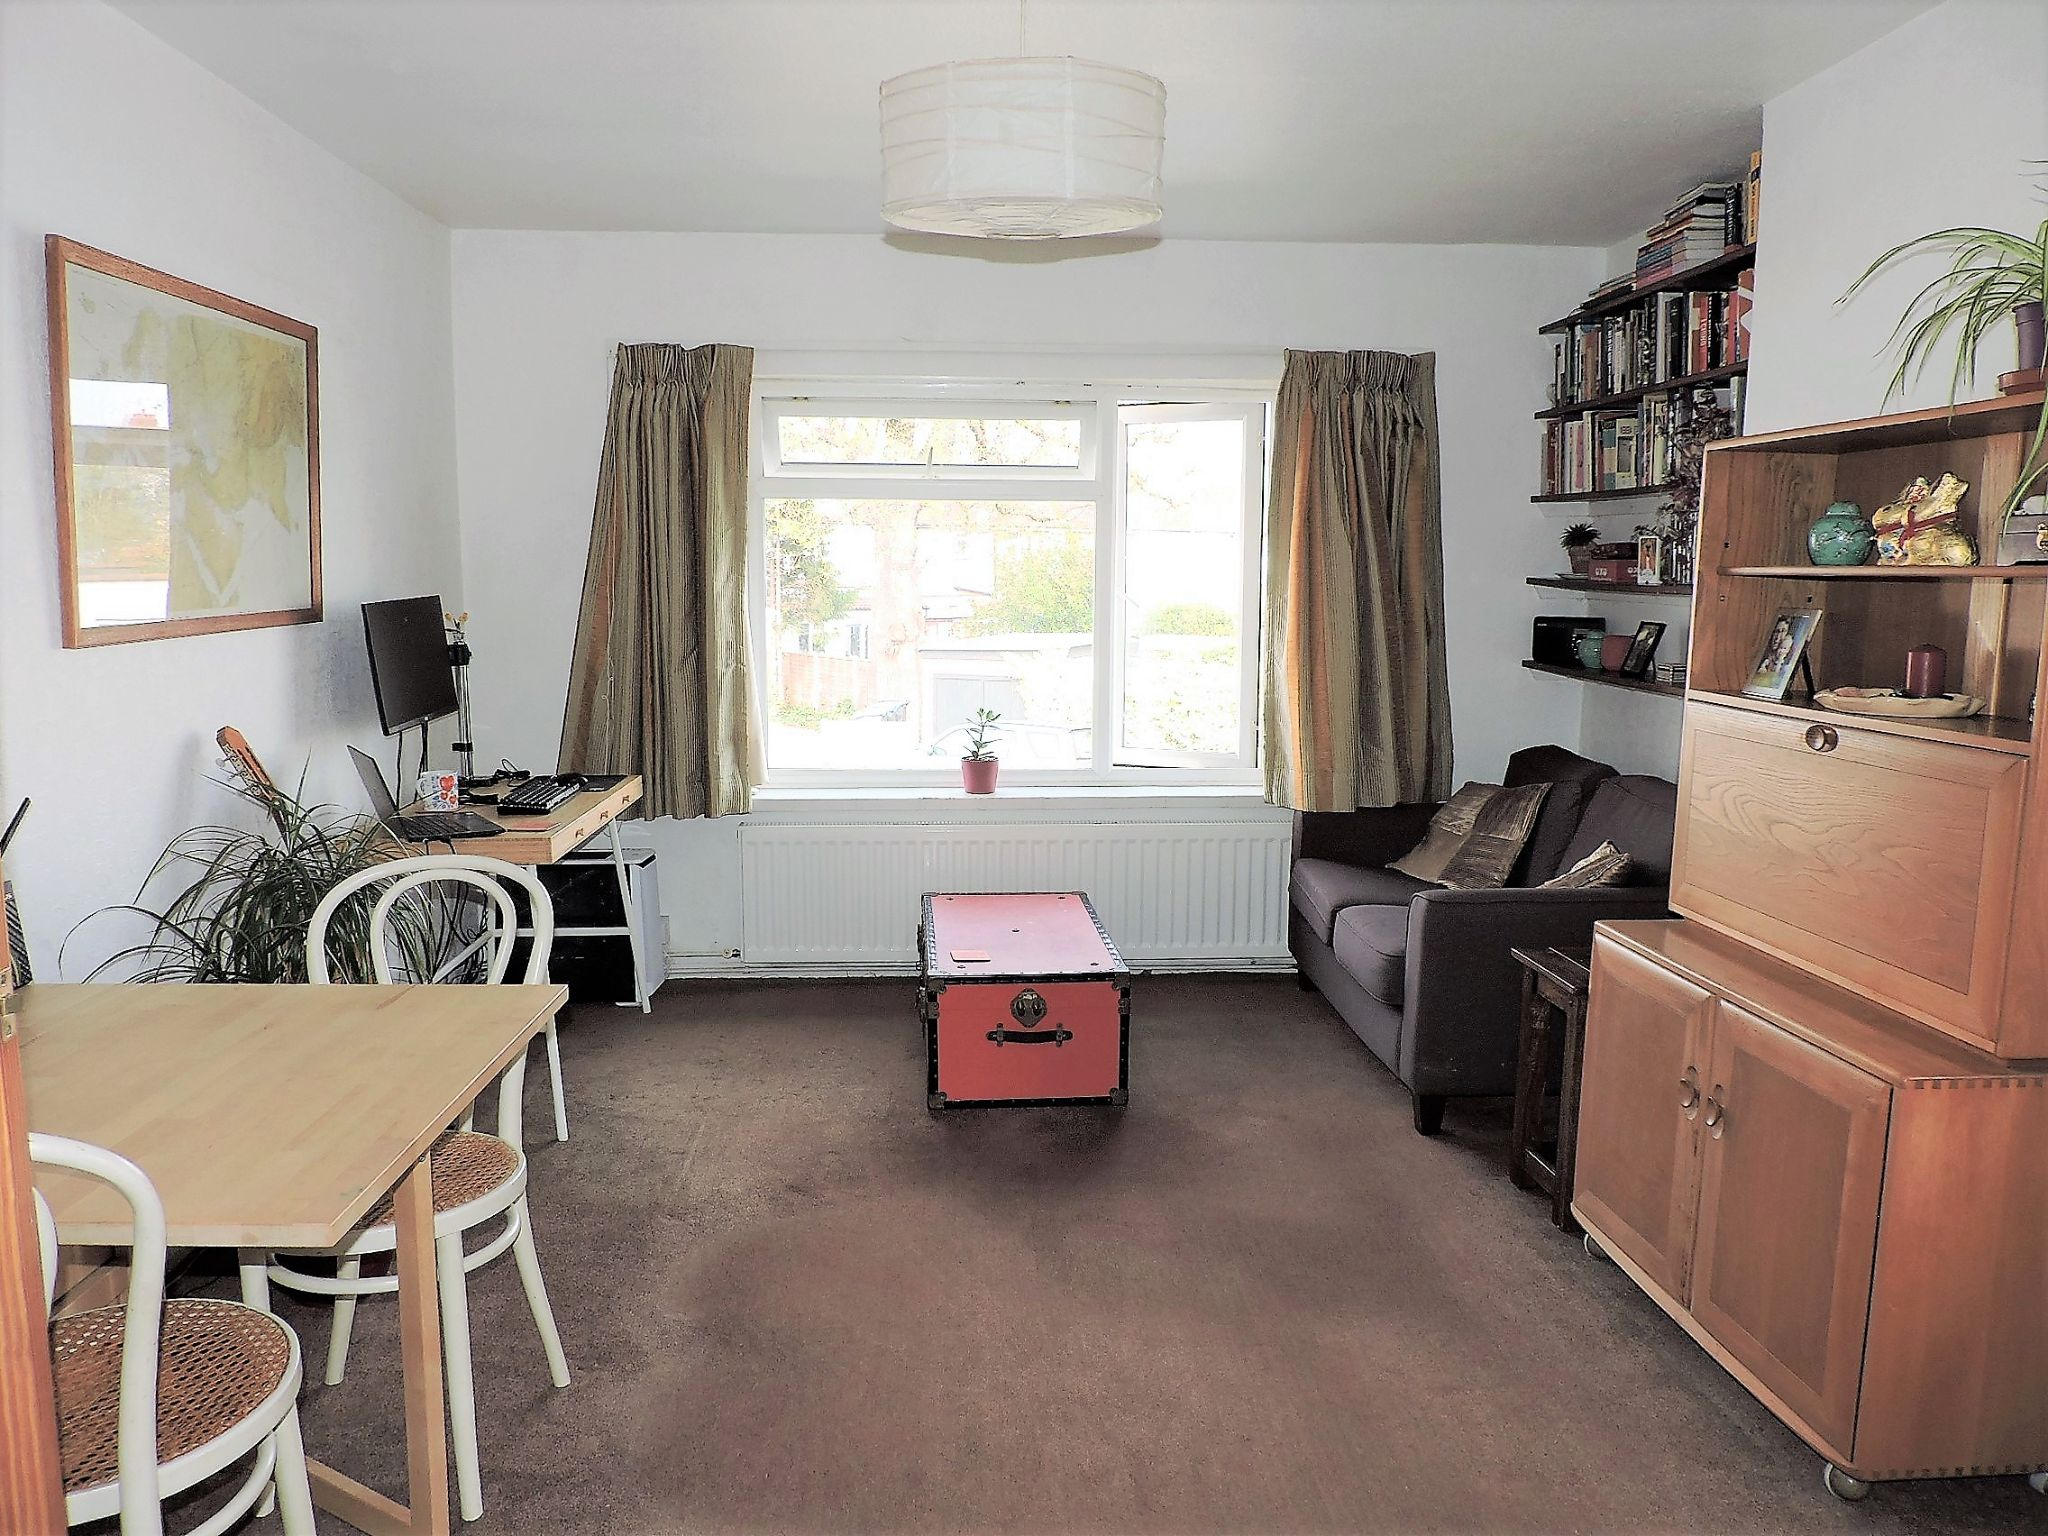 2 bedroom flat flat/apartment For Sale in New Malden - Property photograph